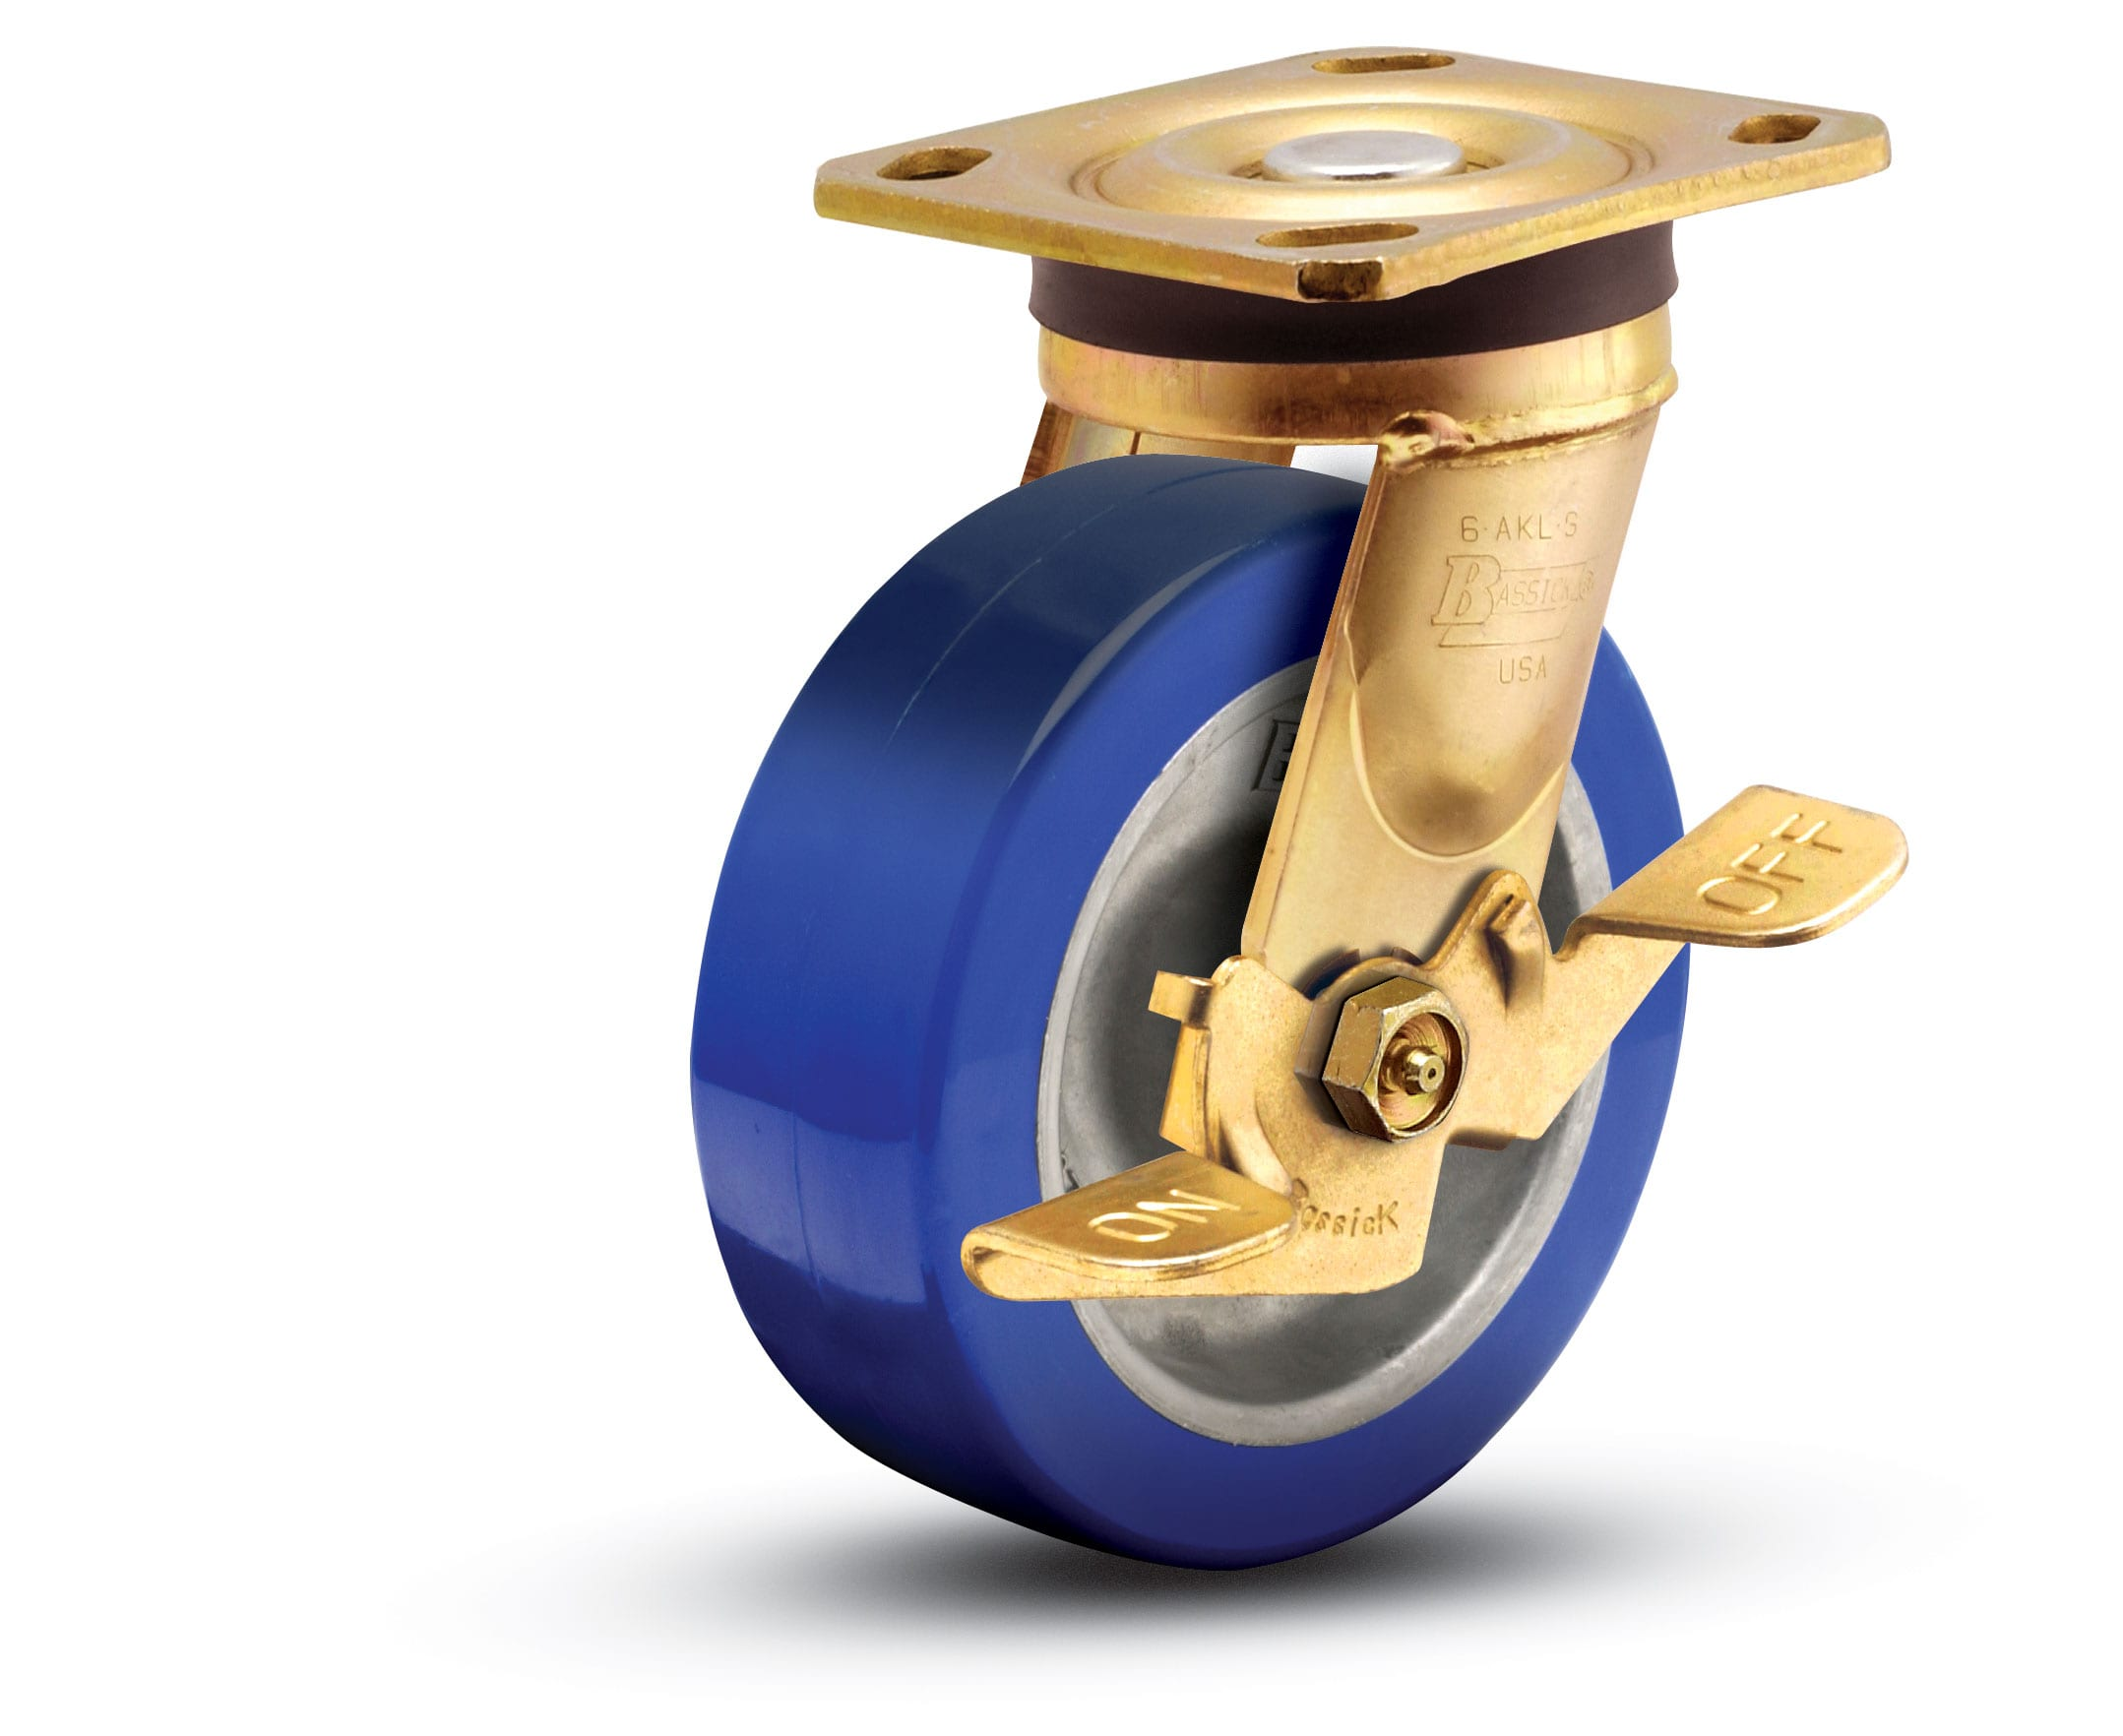 Steel Casters and Wheels 2 2157—1764 Truly Pinterest